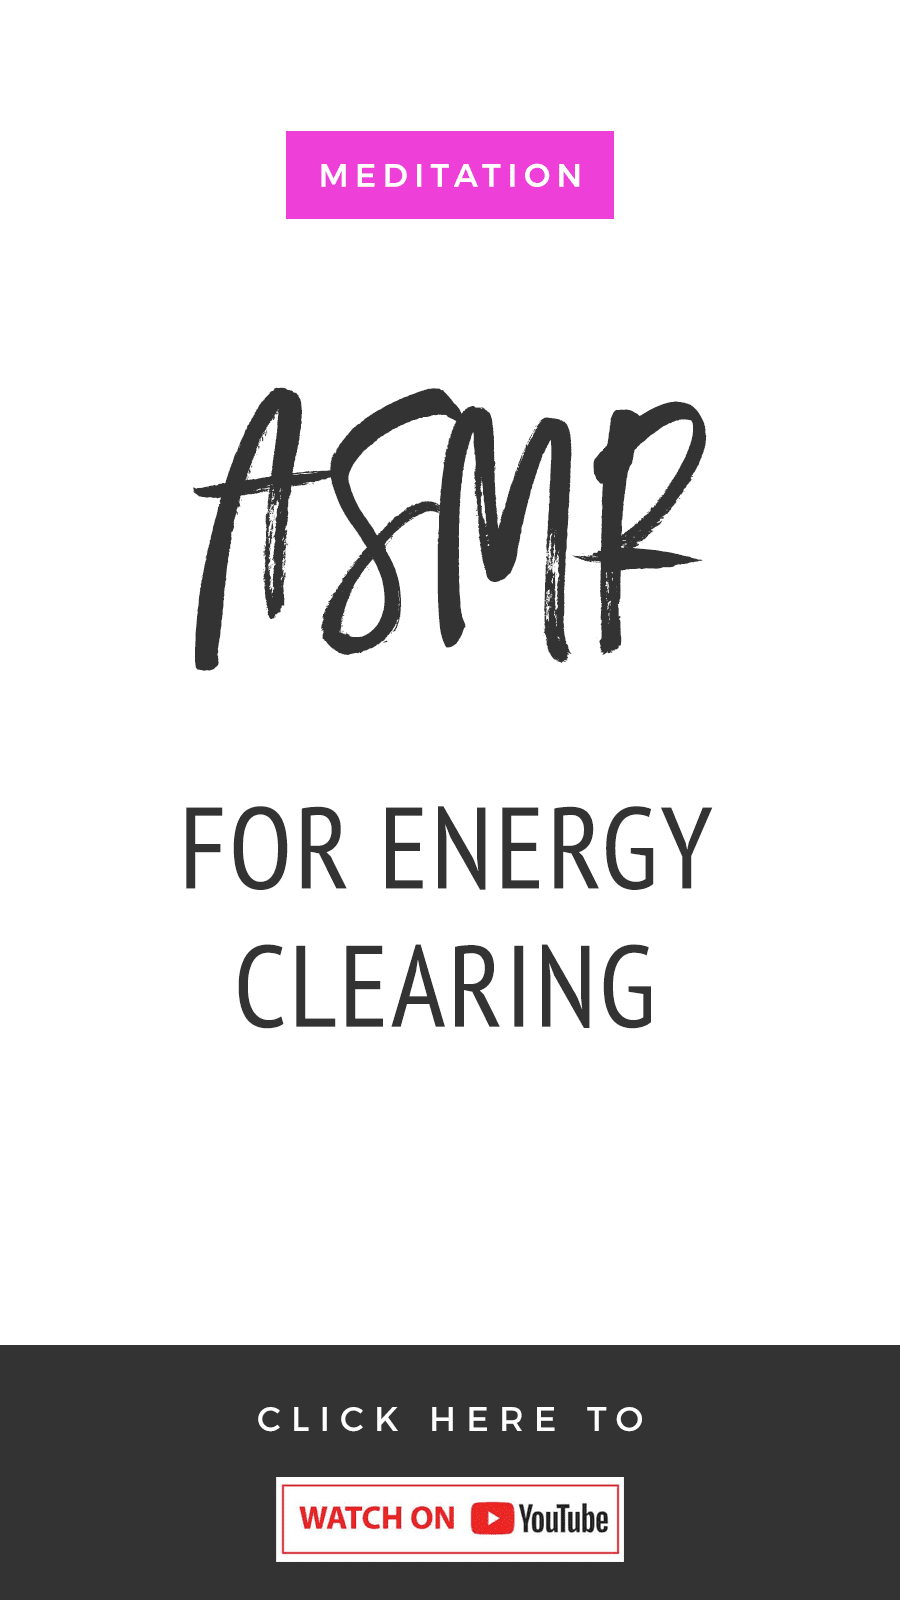 ASMR Meditation For Energy Clearing